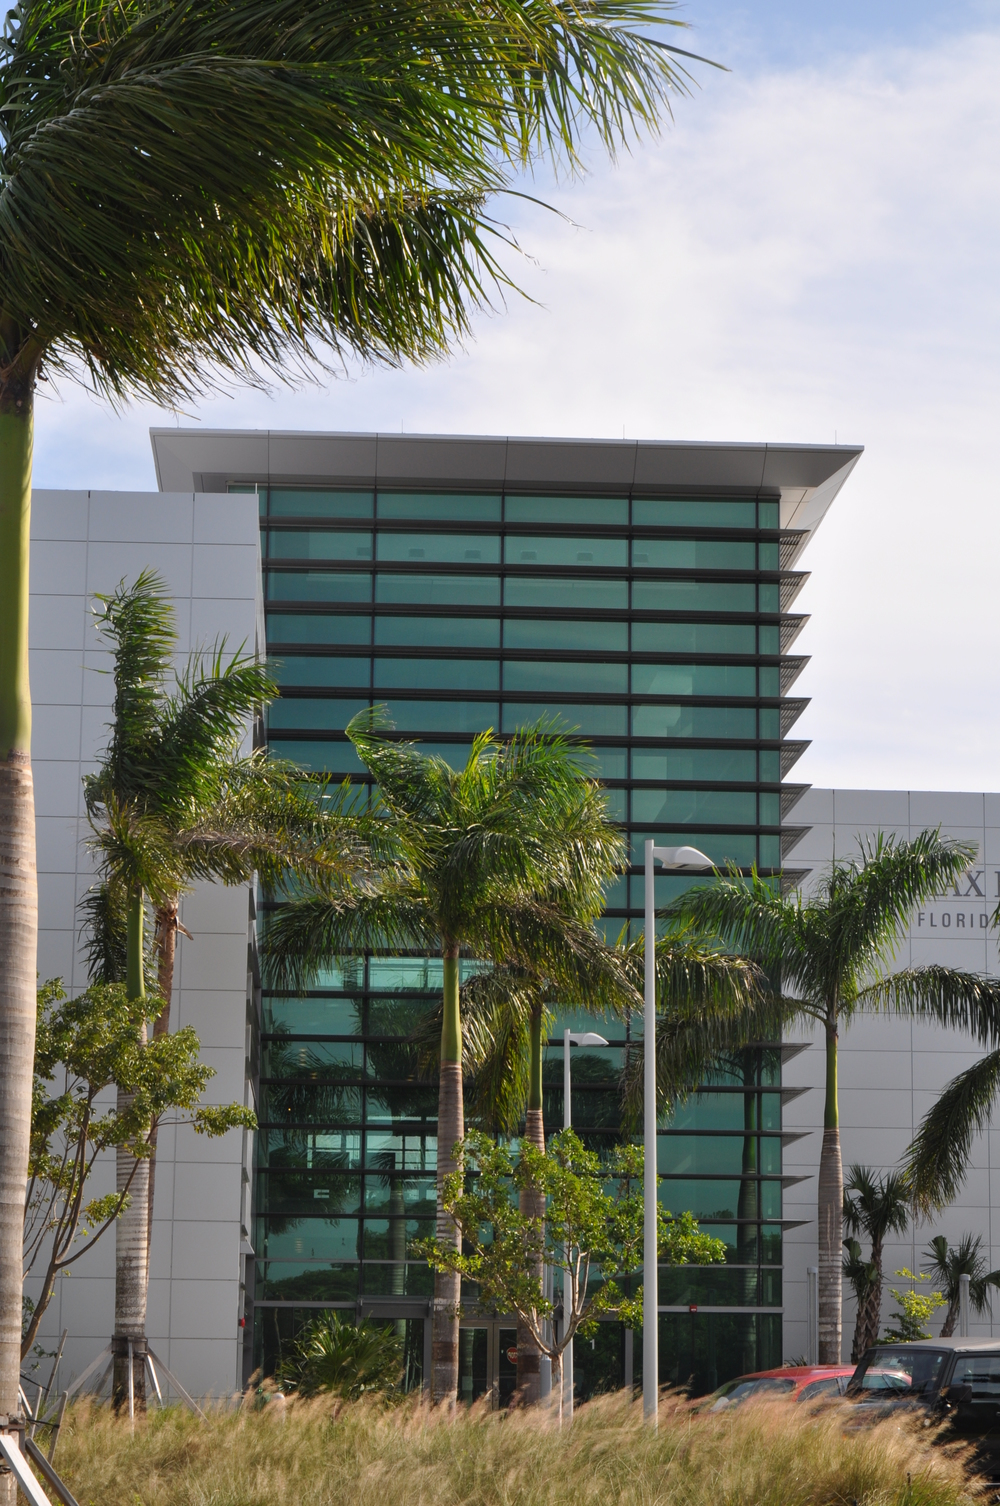 Max Planck  Florida Building Entry.JPG